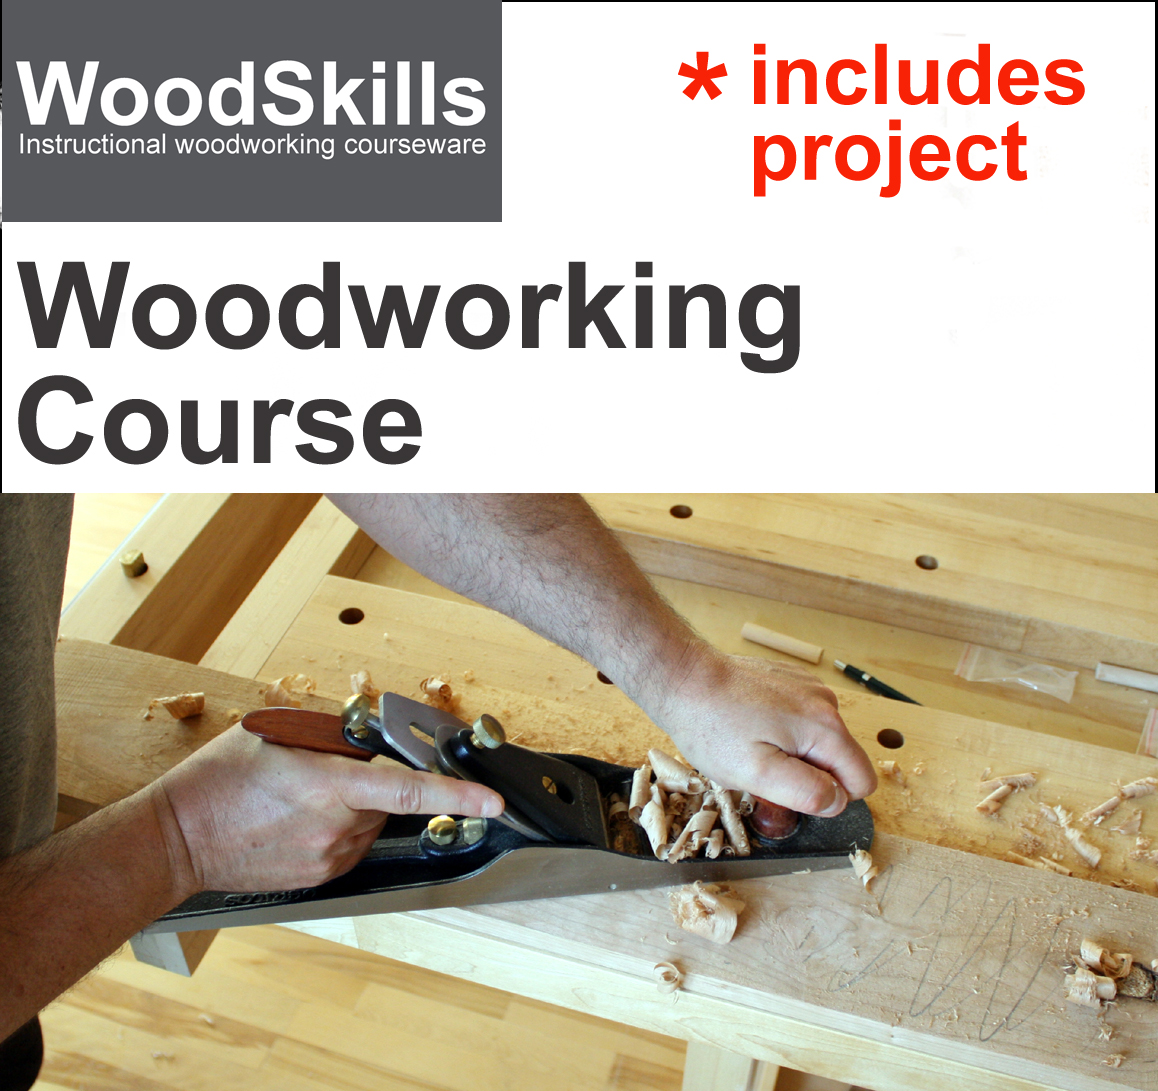 Woodworking Course, Woodworking Class